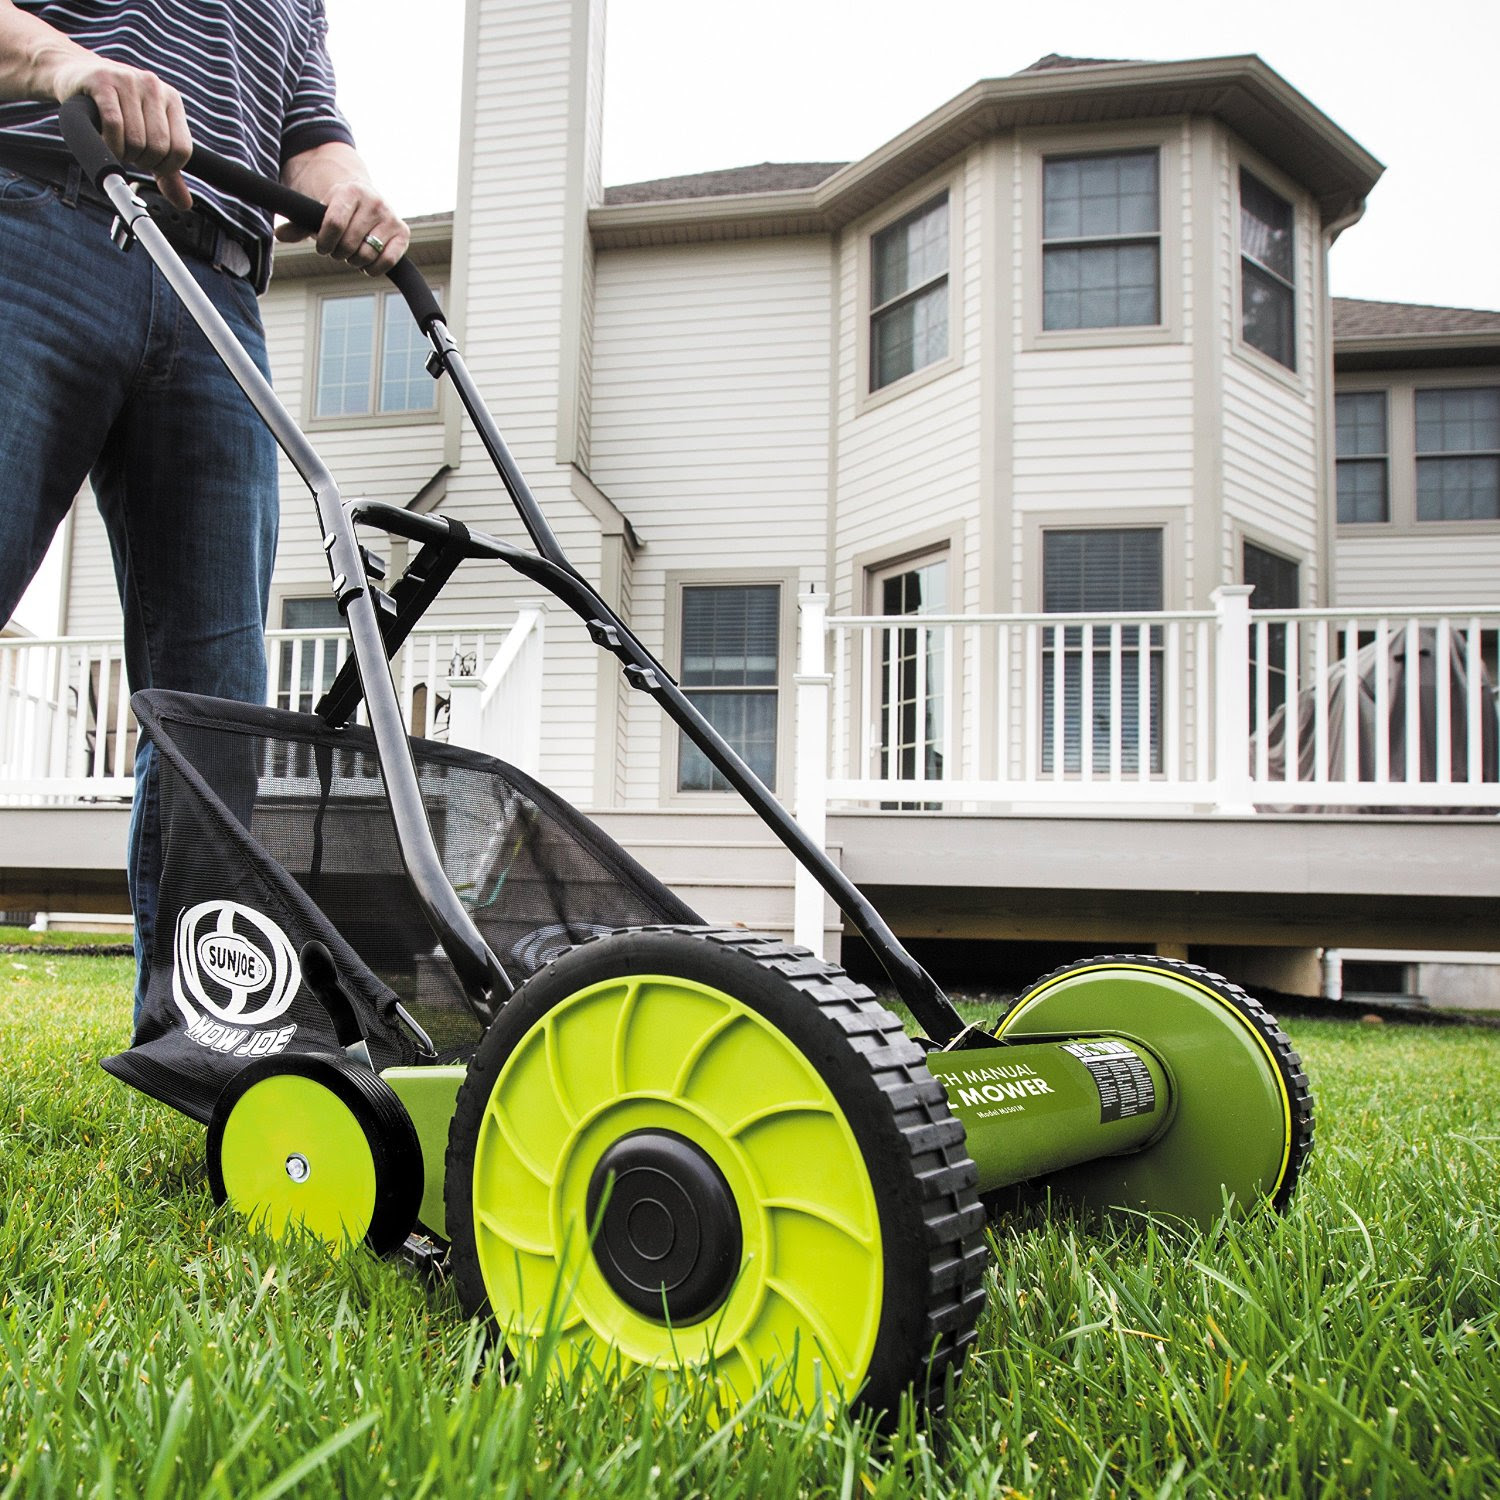 Sun Joe Mow Joe MJ501M 18 Inch Manual Reel Mower Review